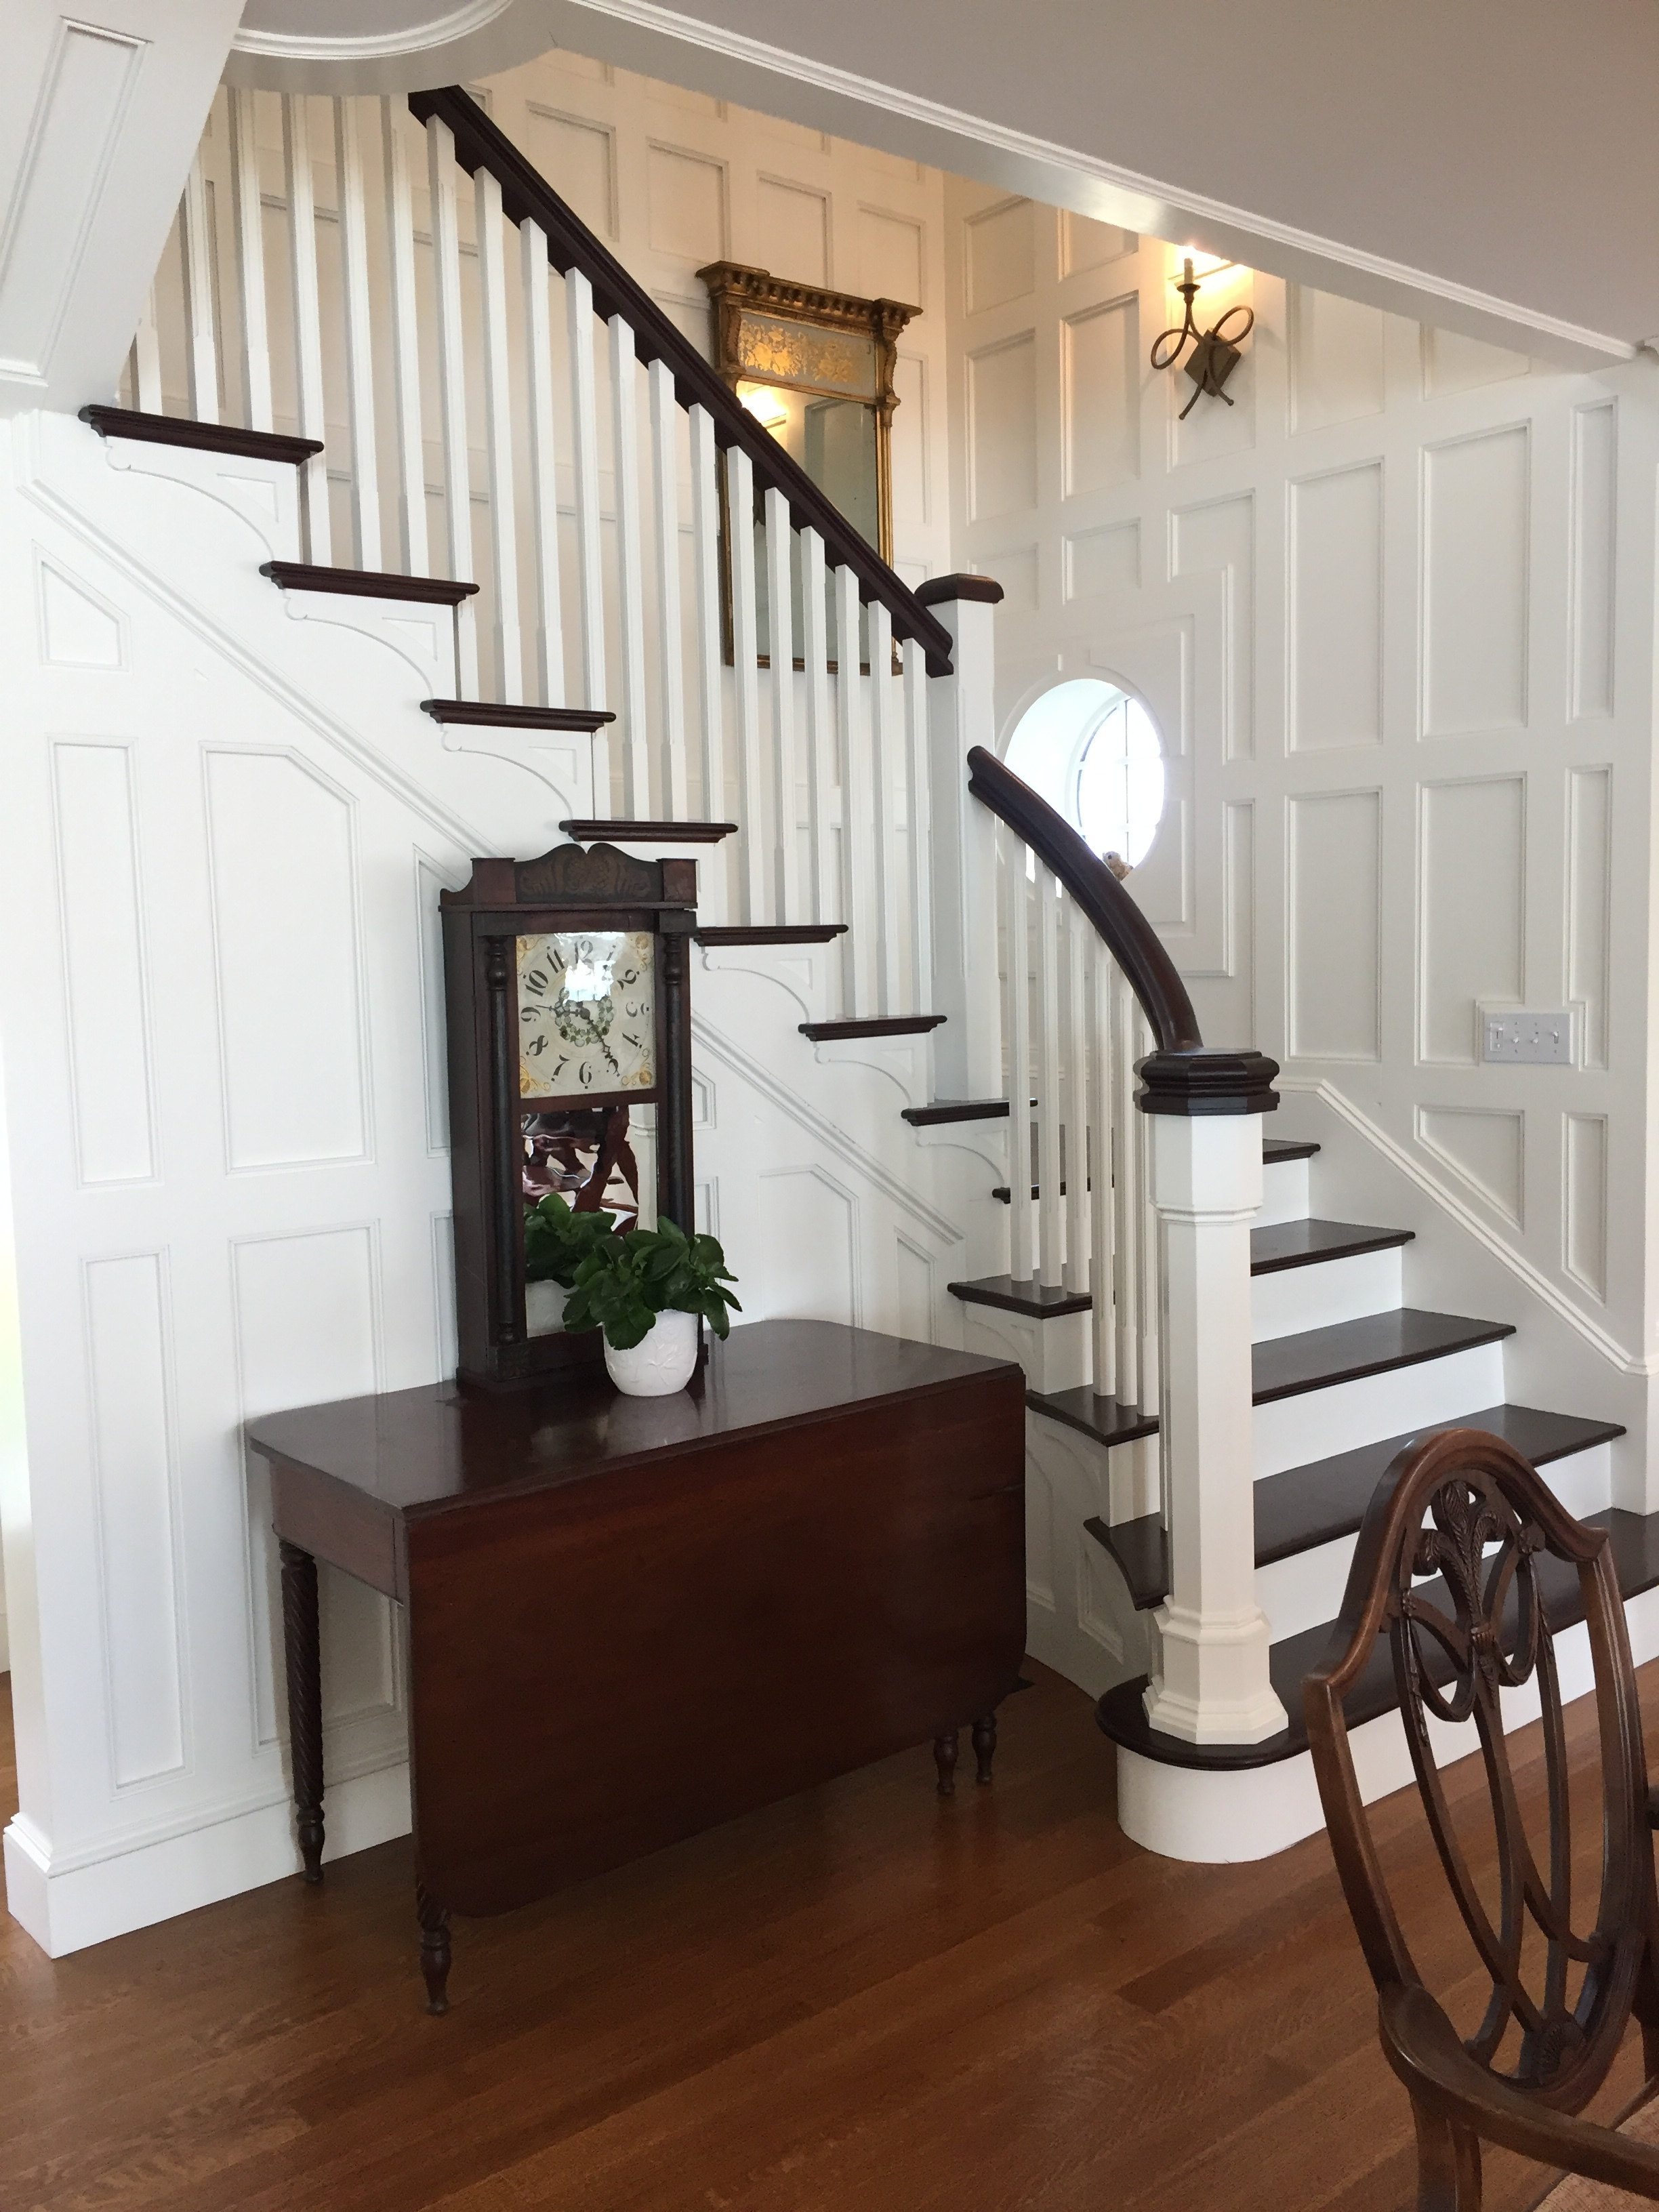 The architectural detail of this stairway is evident, but unseen and sealed inside the lower newel post, one will find a time capsule secretly placed by the current family with hopes that someday, in the far future, others will find it.